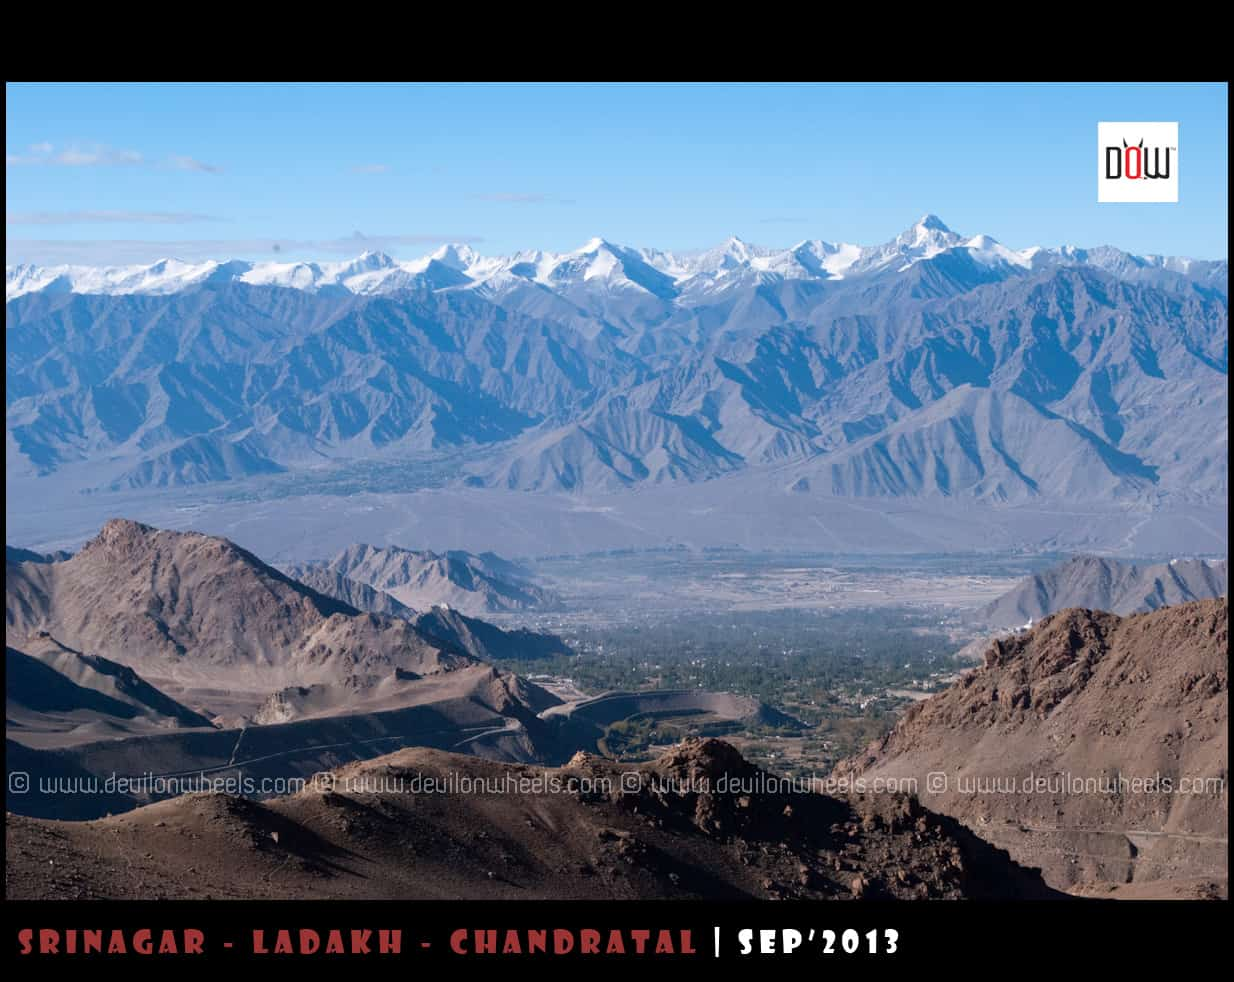 Stok Range, guarding the Heaven called Ladakh